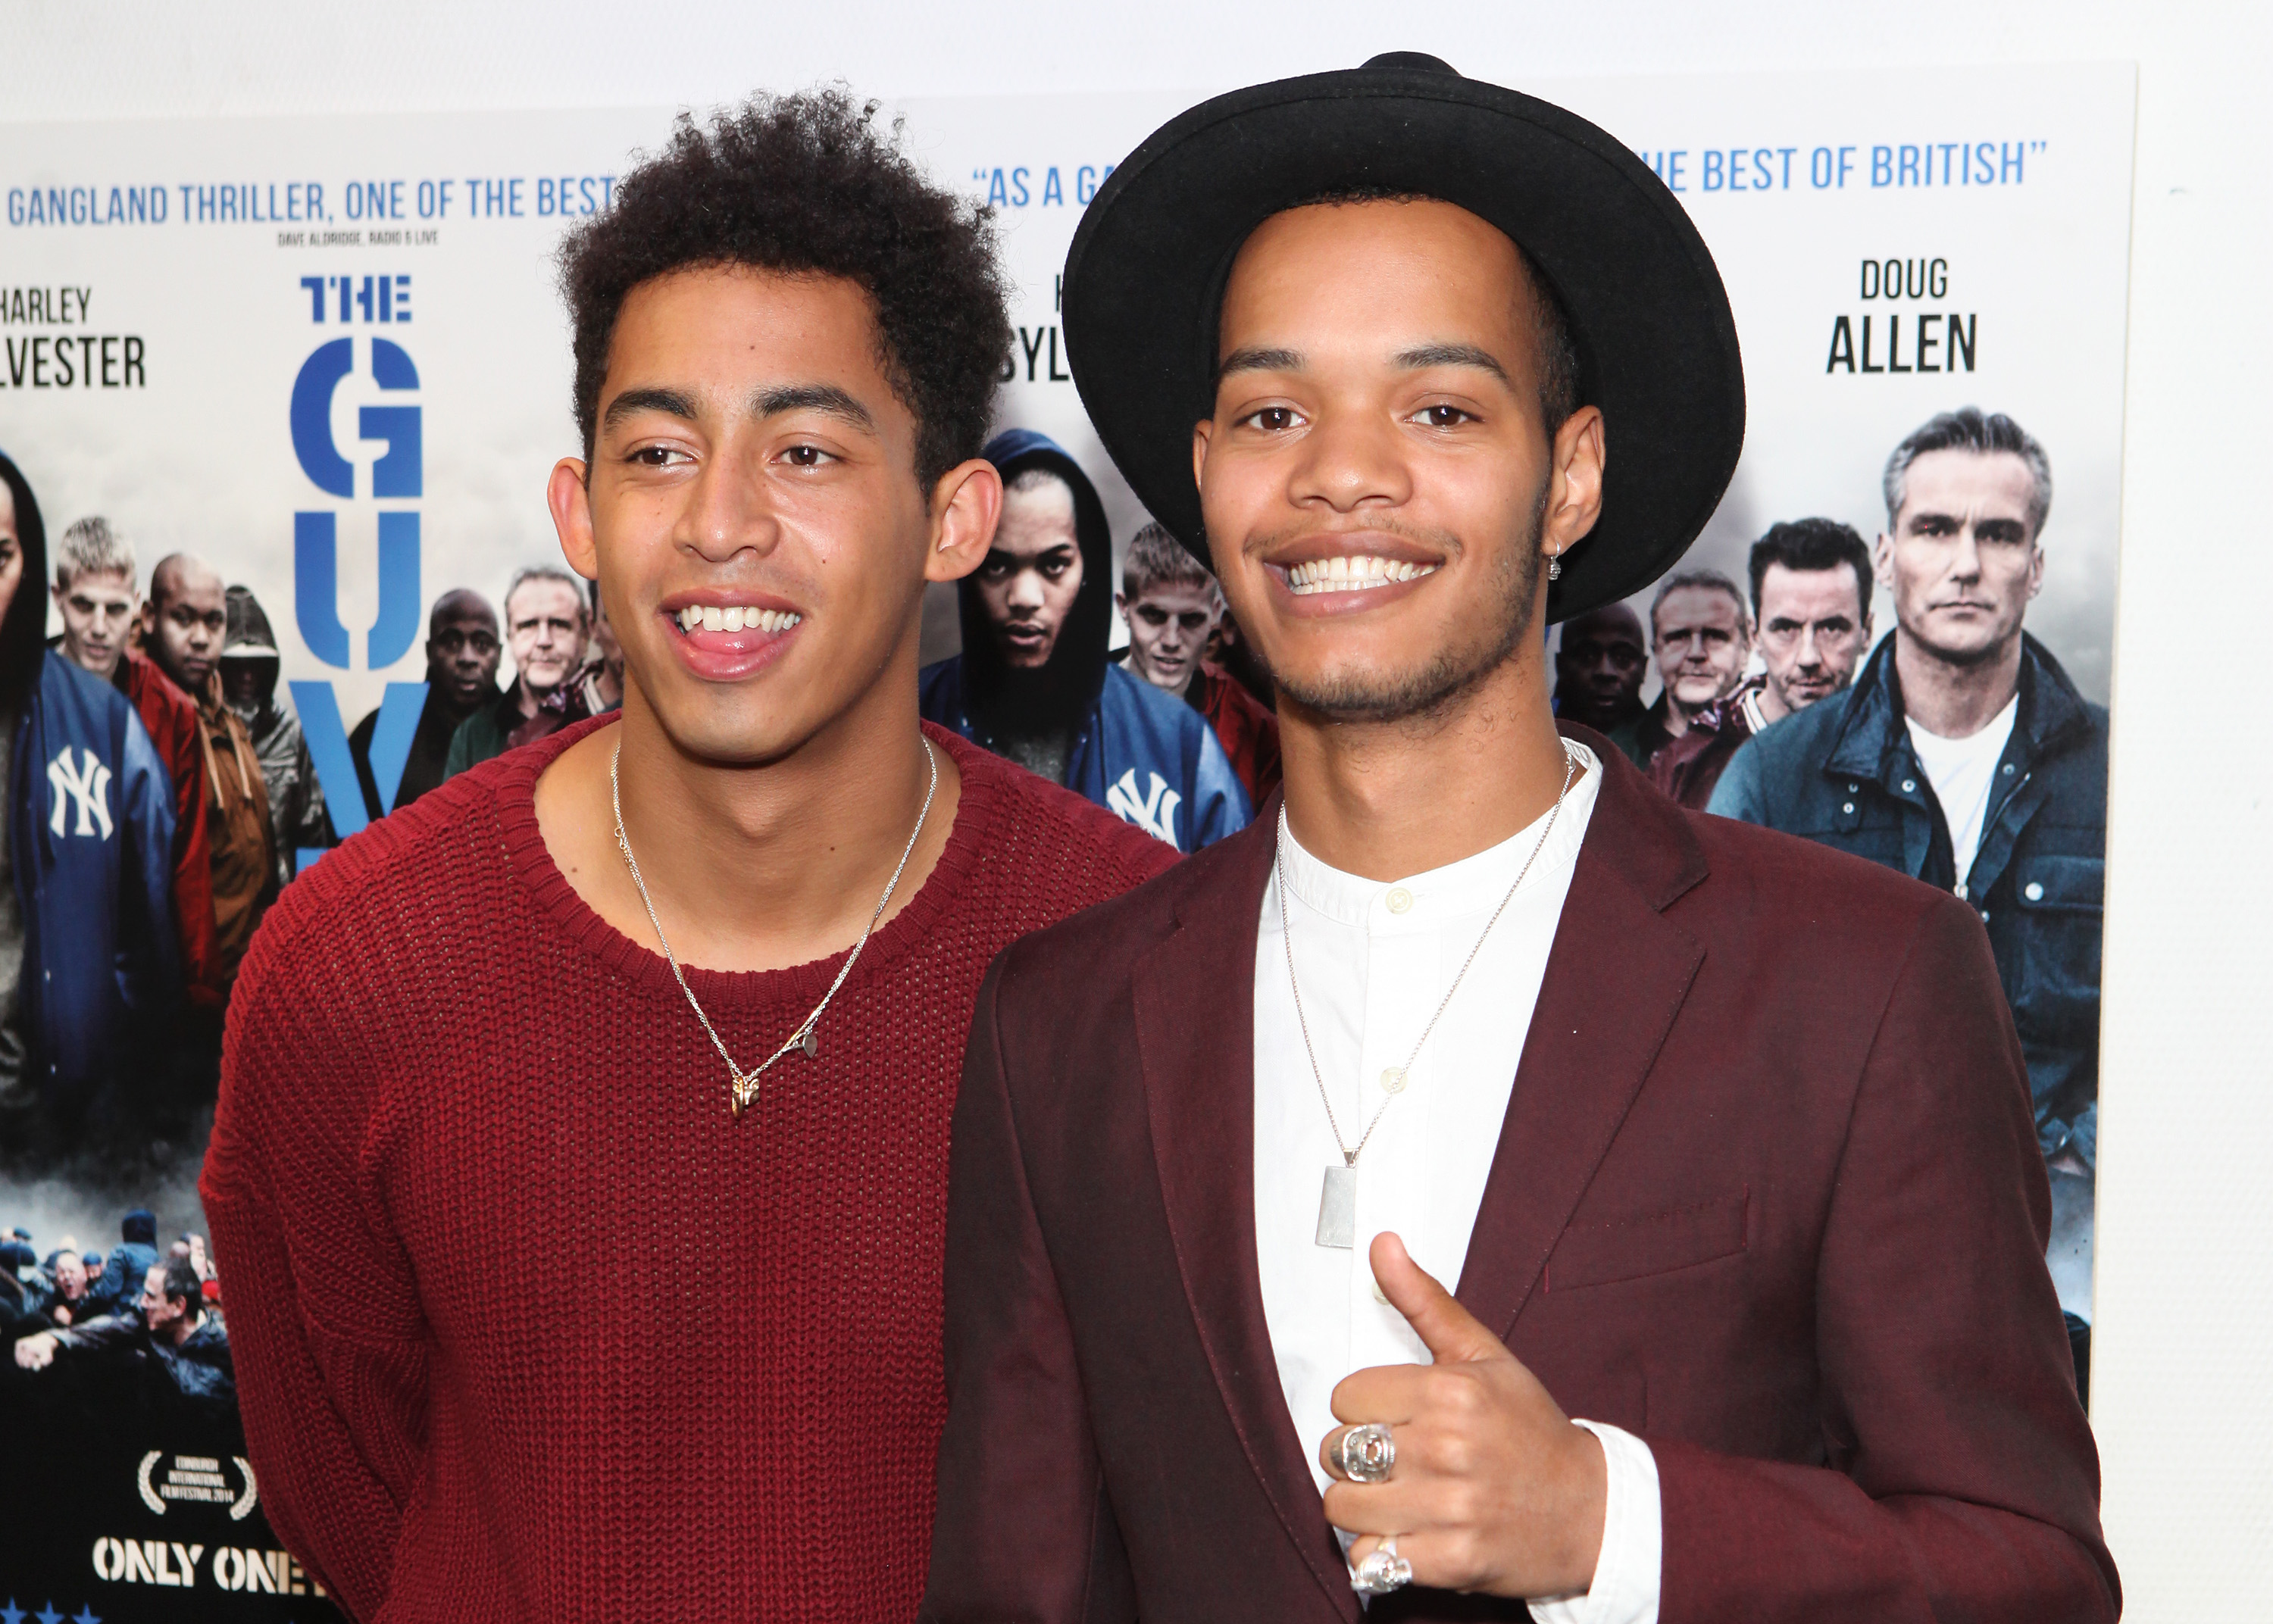 Rizzle Kicks' Harley Sylvester speaks about diversity in the music industry, calls the MOBOs a 'f**king joke'